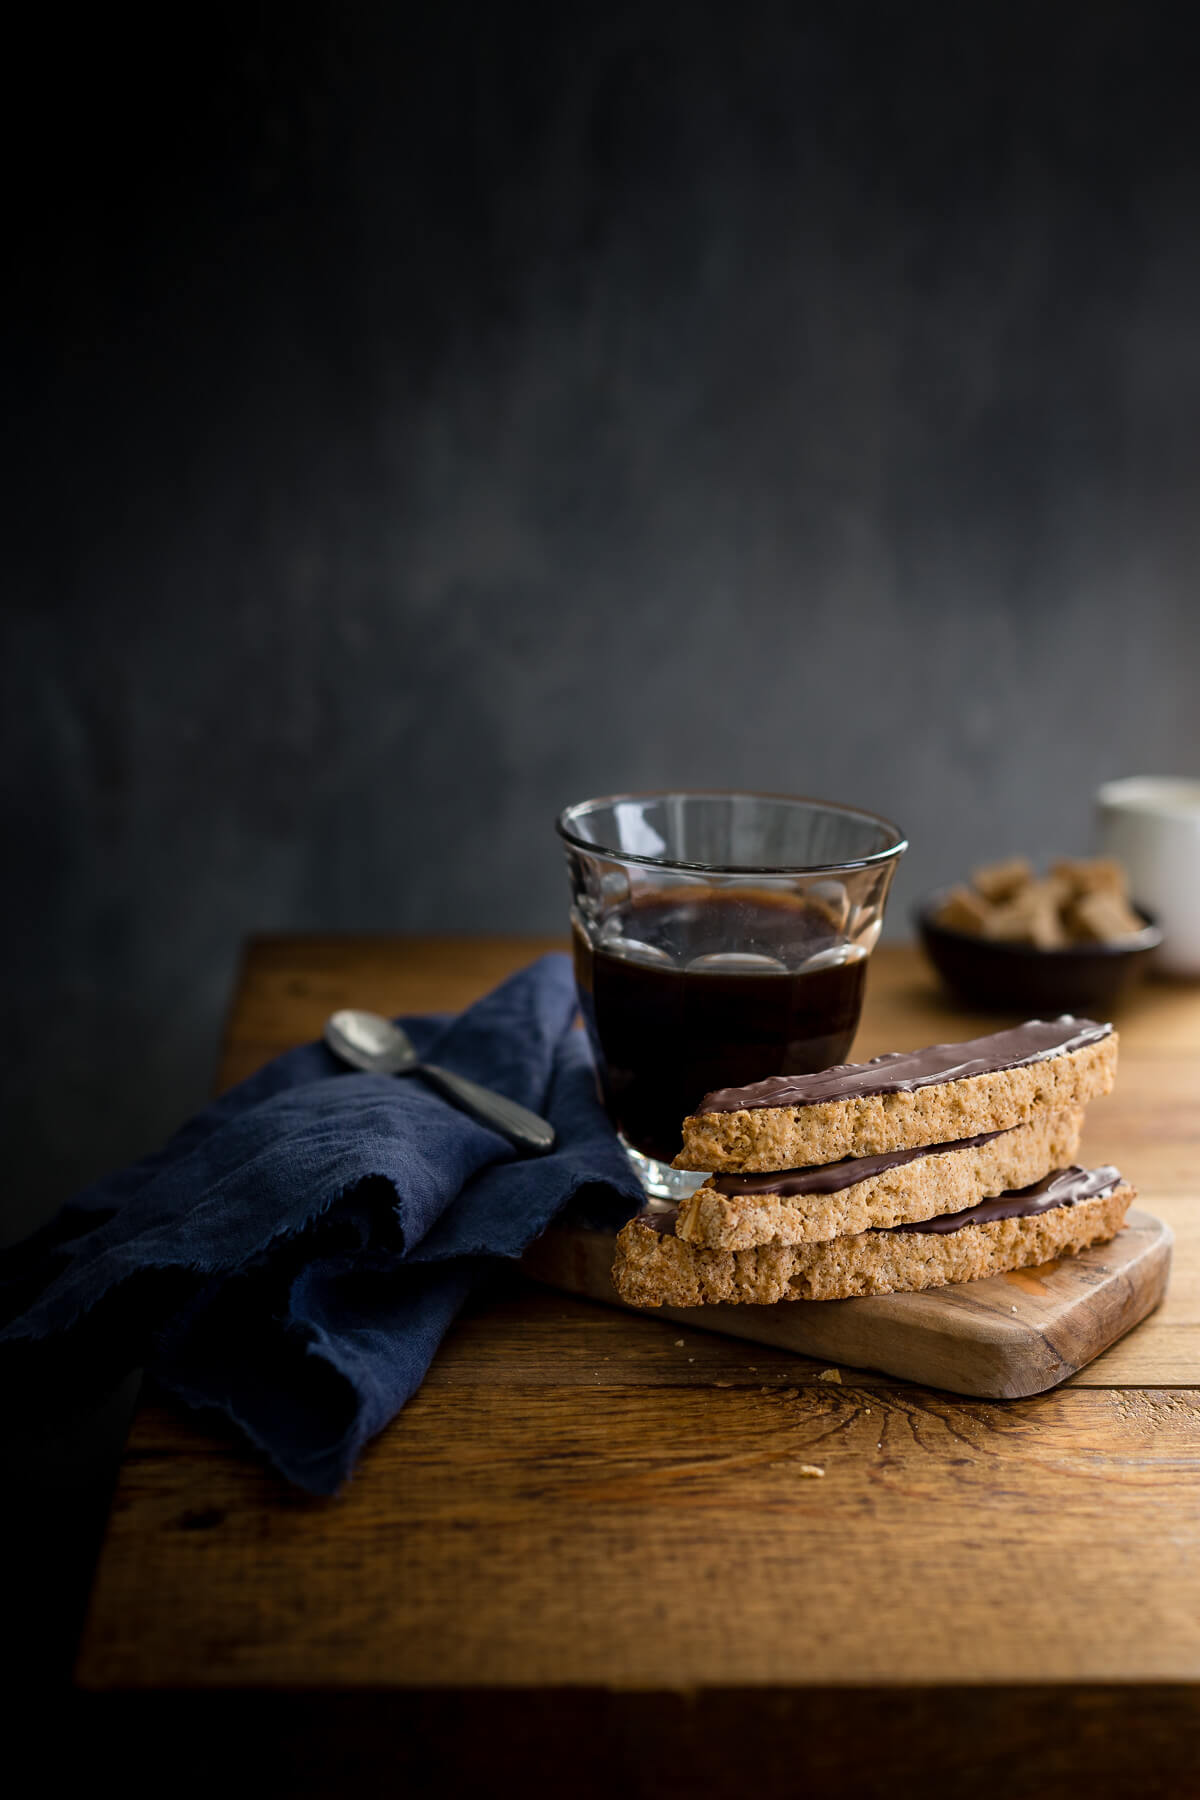 Almond biscotti and a cup of coffee on a small wooden board with a blue napkin.